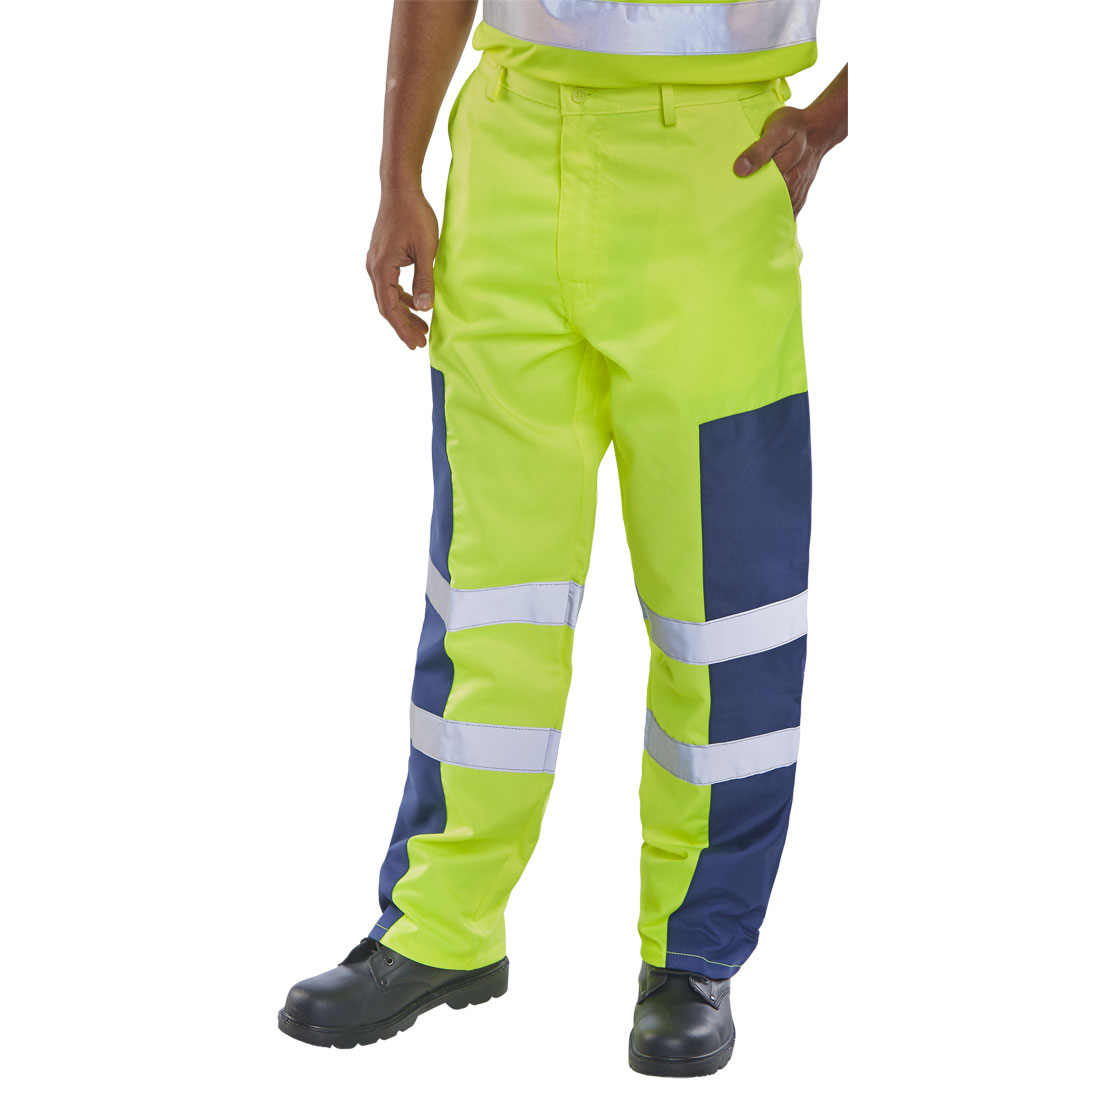 Click Workwear Trousers Hi-Vis Nylon Patch Yellow/Navy 36 Long Ref PCTSYNNP36T Up to 3 Day Leadtime